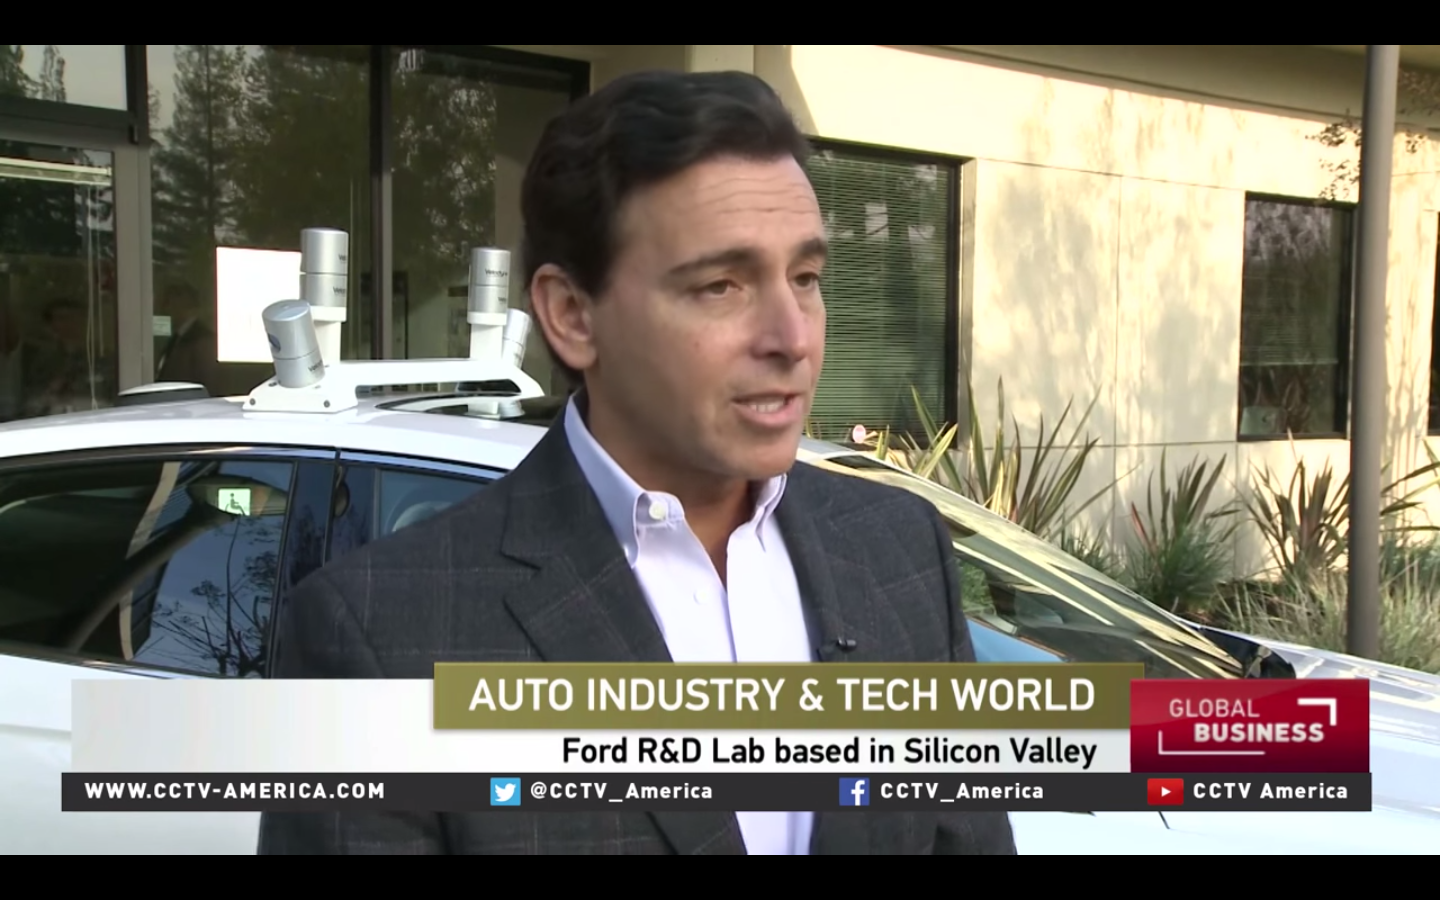 Ford's Growing Presence in Silicon Valley